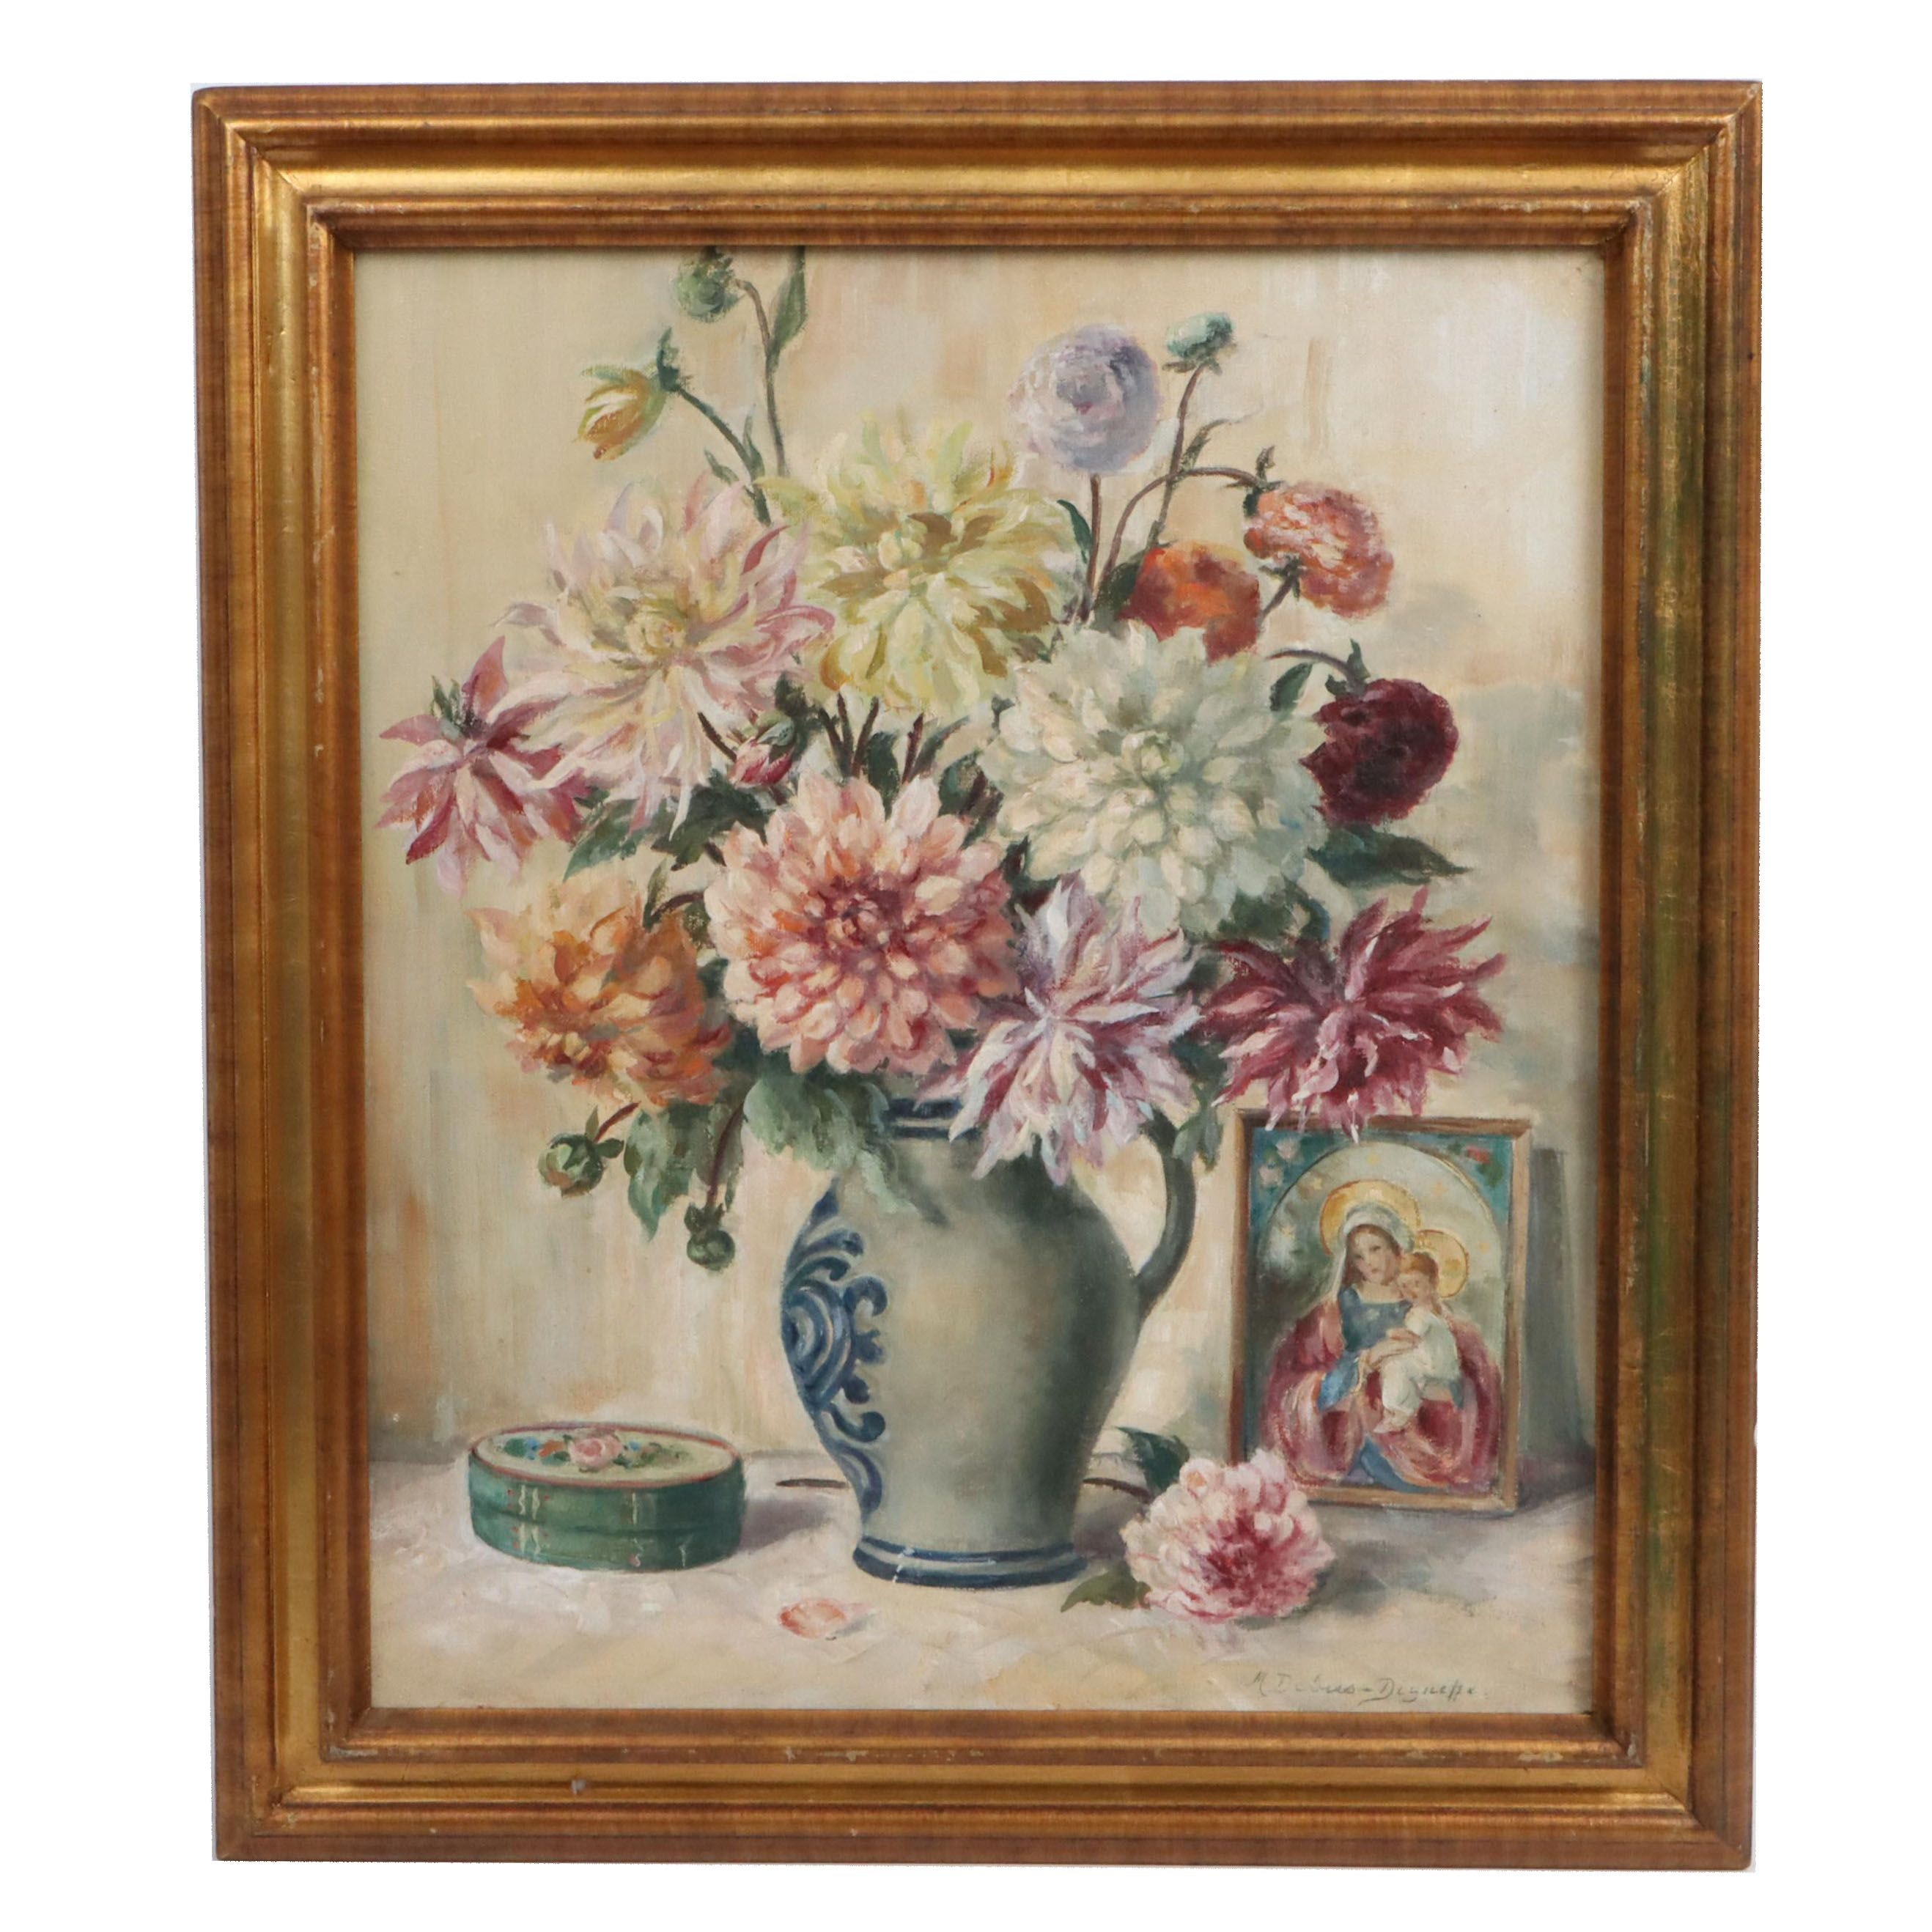 Maria Debus-Digneffe Floral Still Life Oil Painting